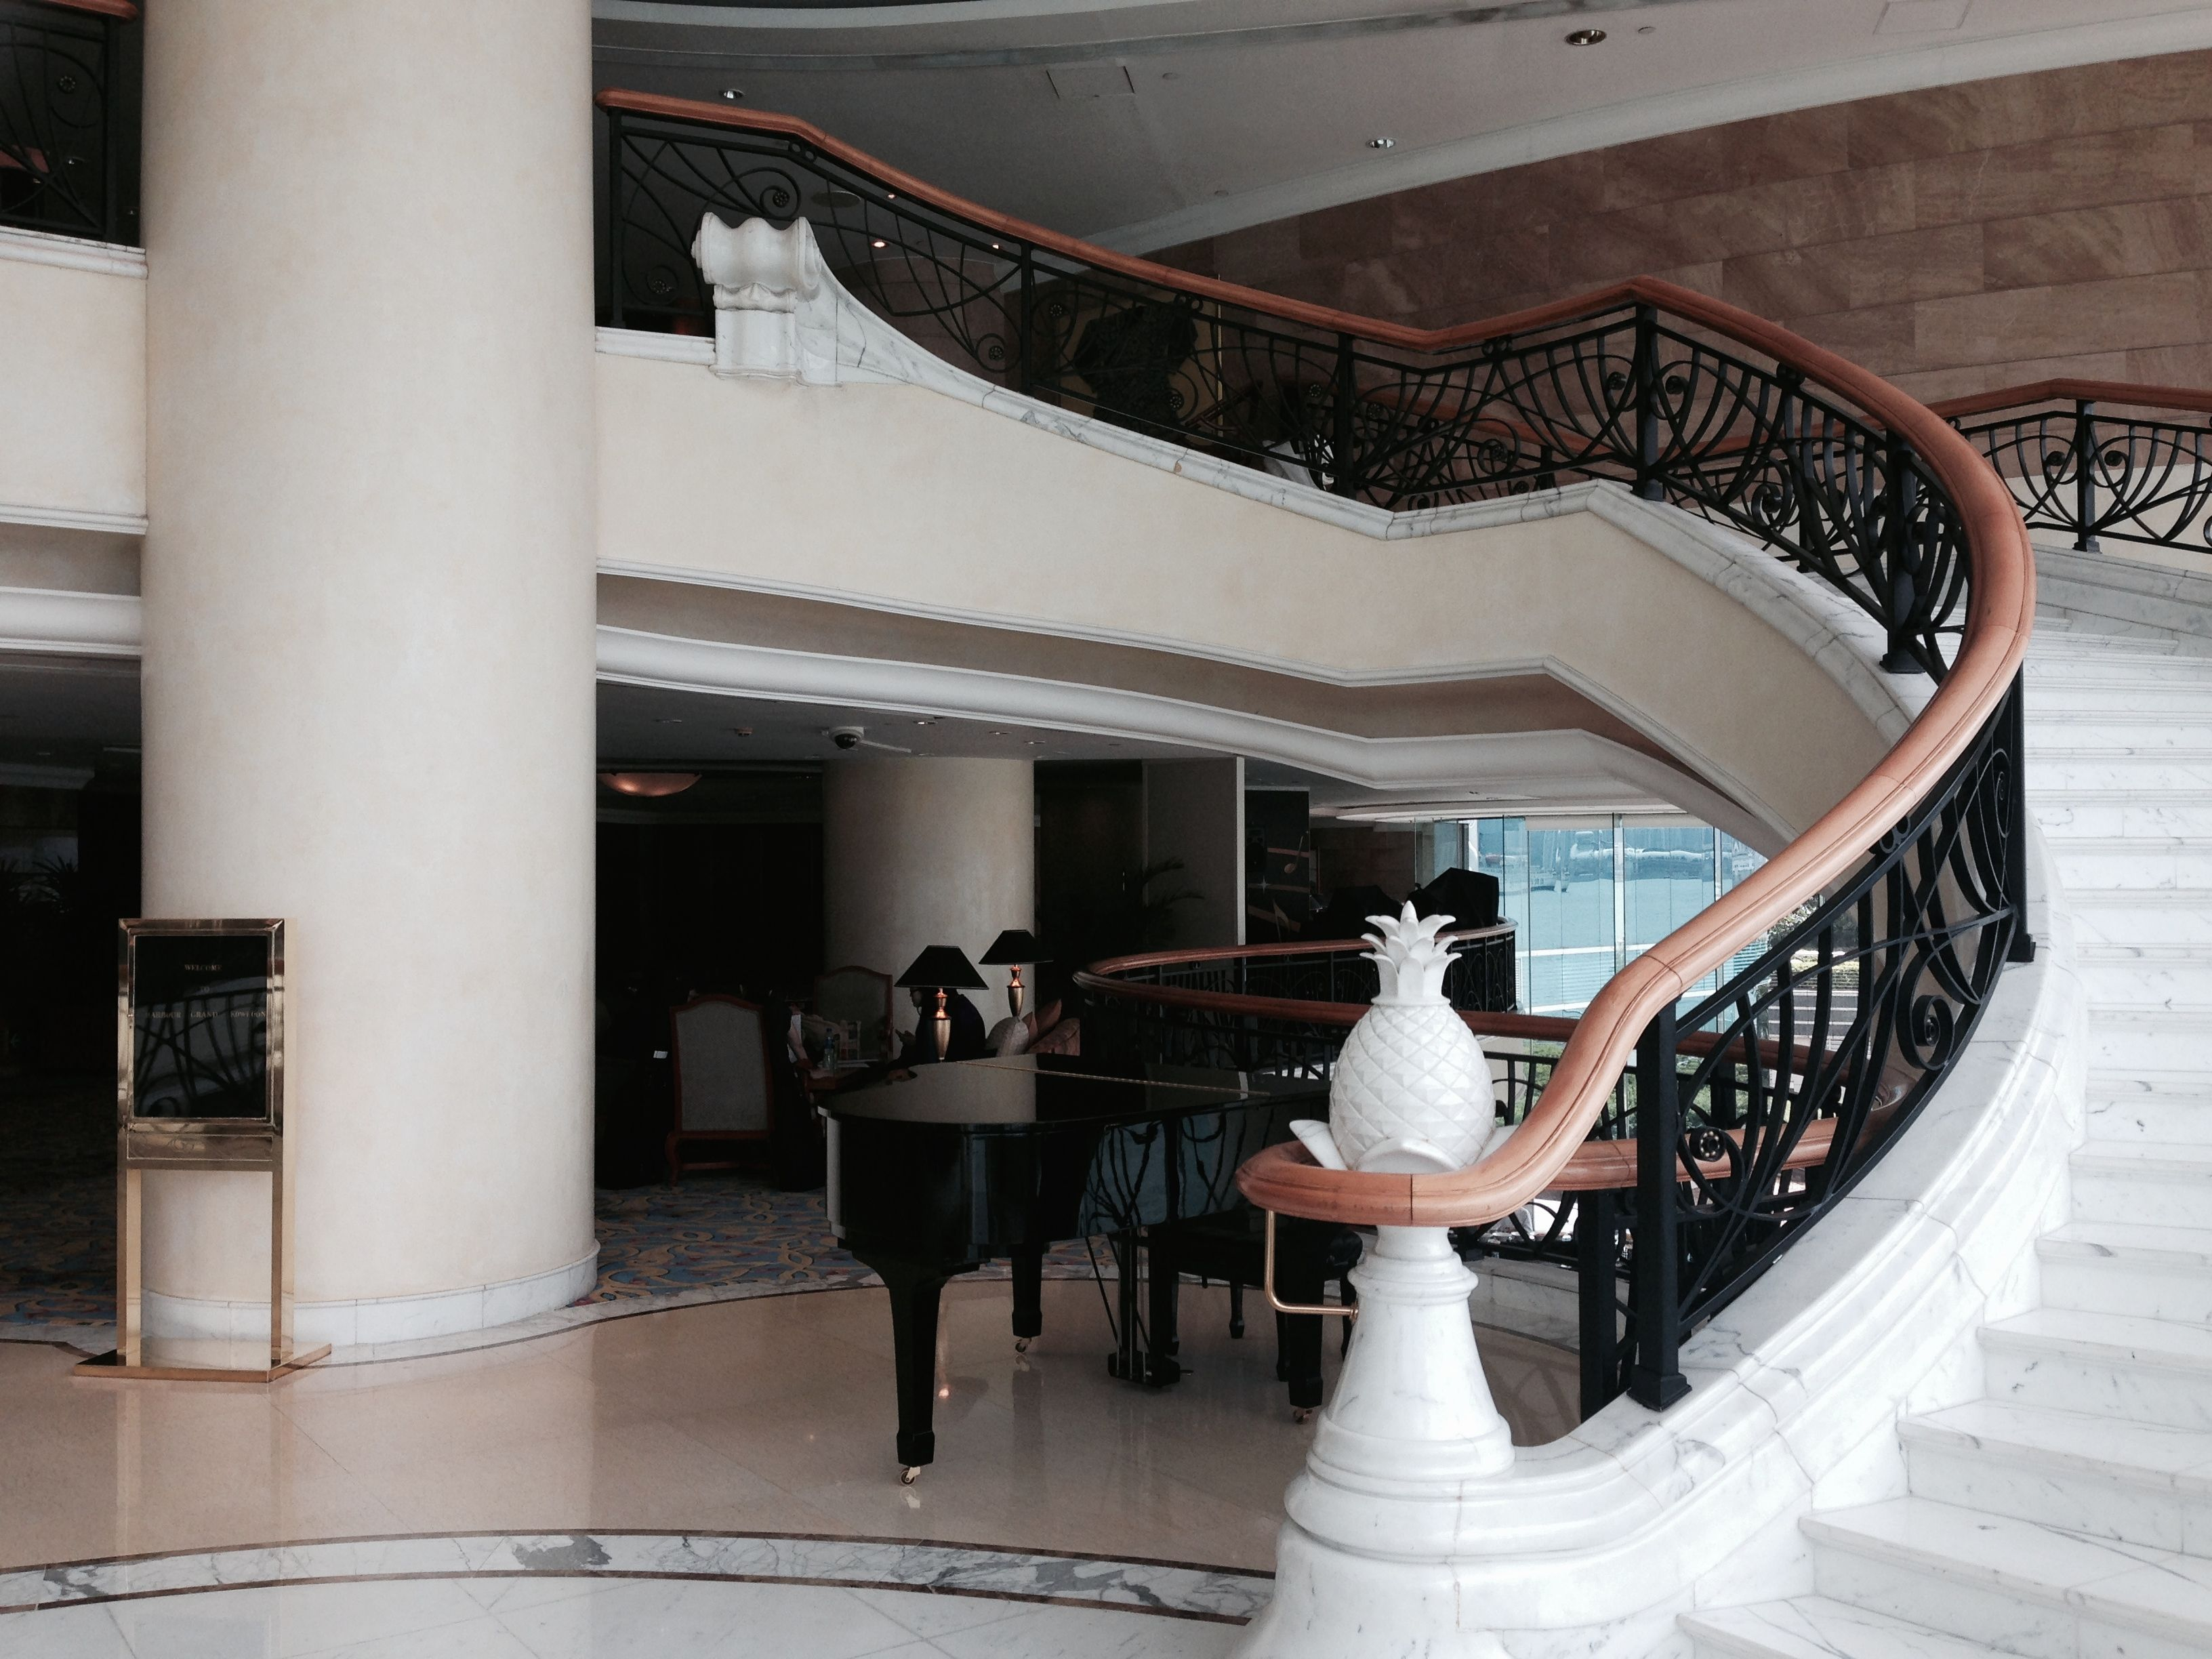 Baby Grand Piano and staircase up the